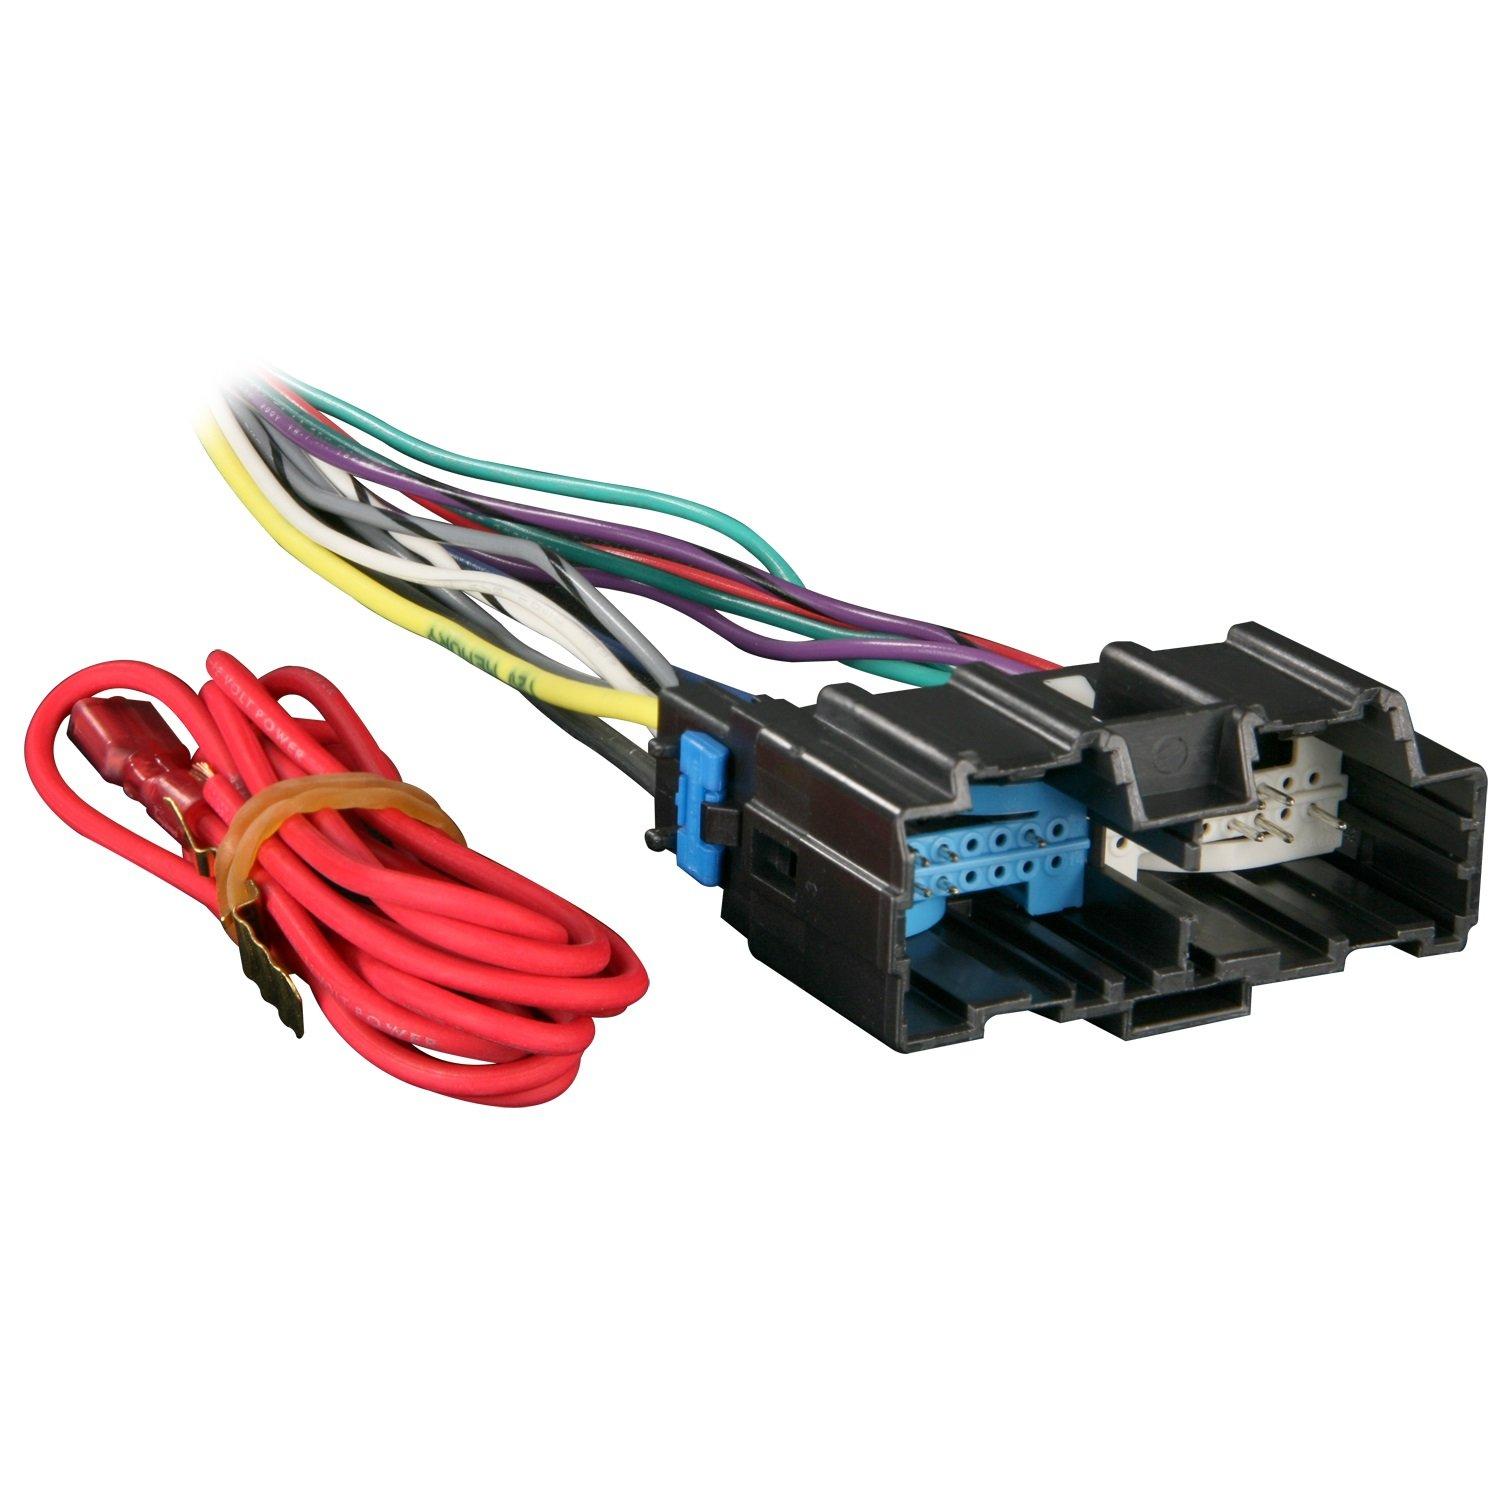 71ZzH dyg7L._SL1500_ amazon com metra 70 2105 radio wiring harness for impala monte Metra Wiring Harness Diagram at webbmarketing.co